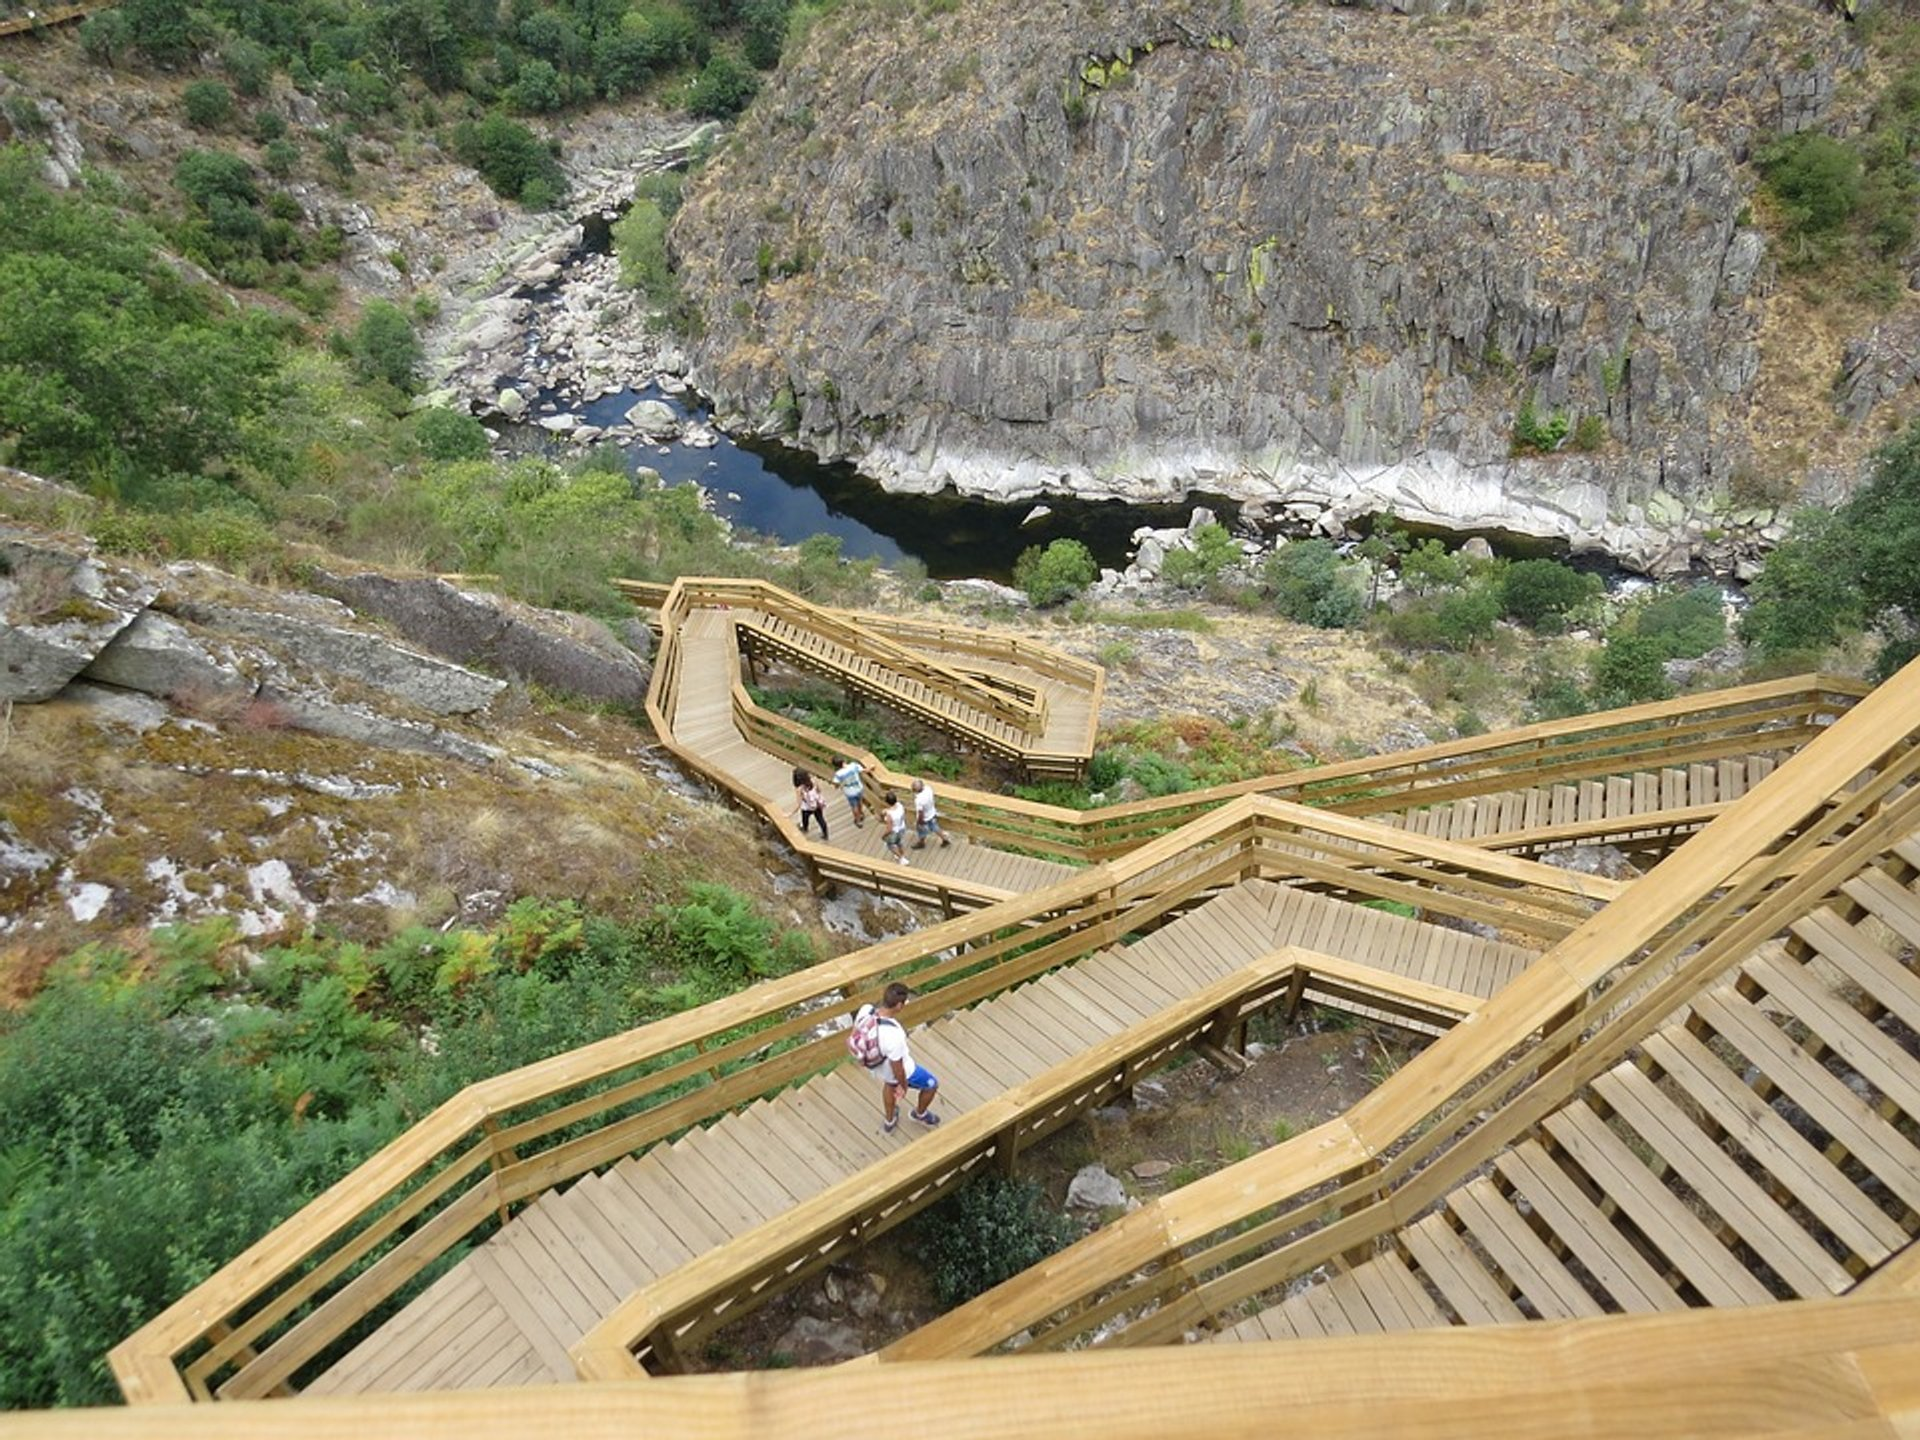 Passadiços do Paiva or Paiva Walkways in Portugal 2019 - Best Time